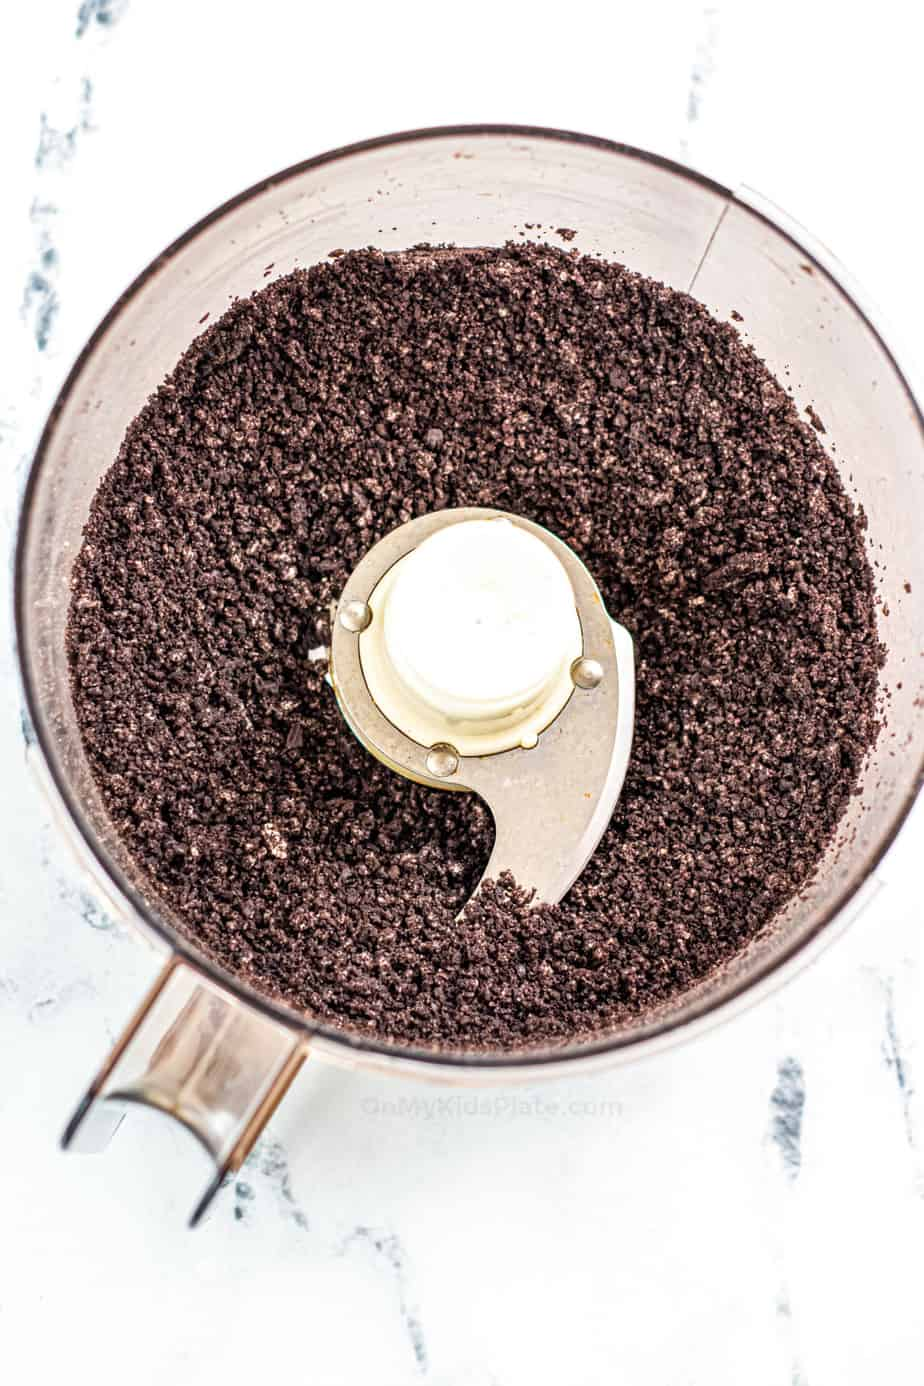 Oreo crumbs crushed inside of a food processor.